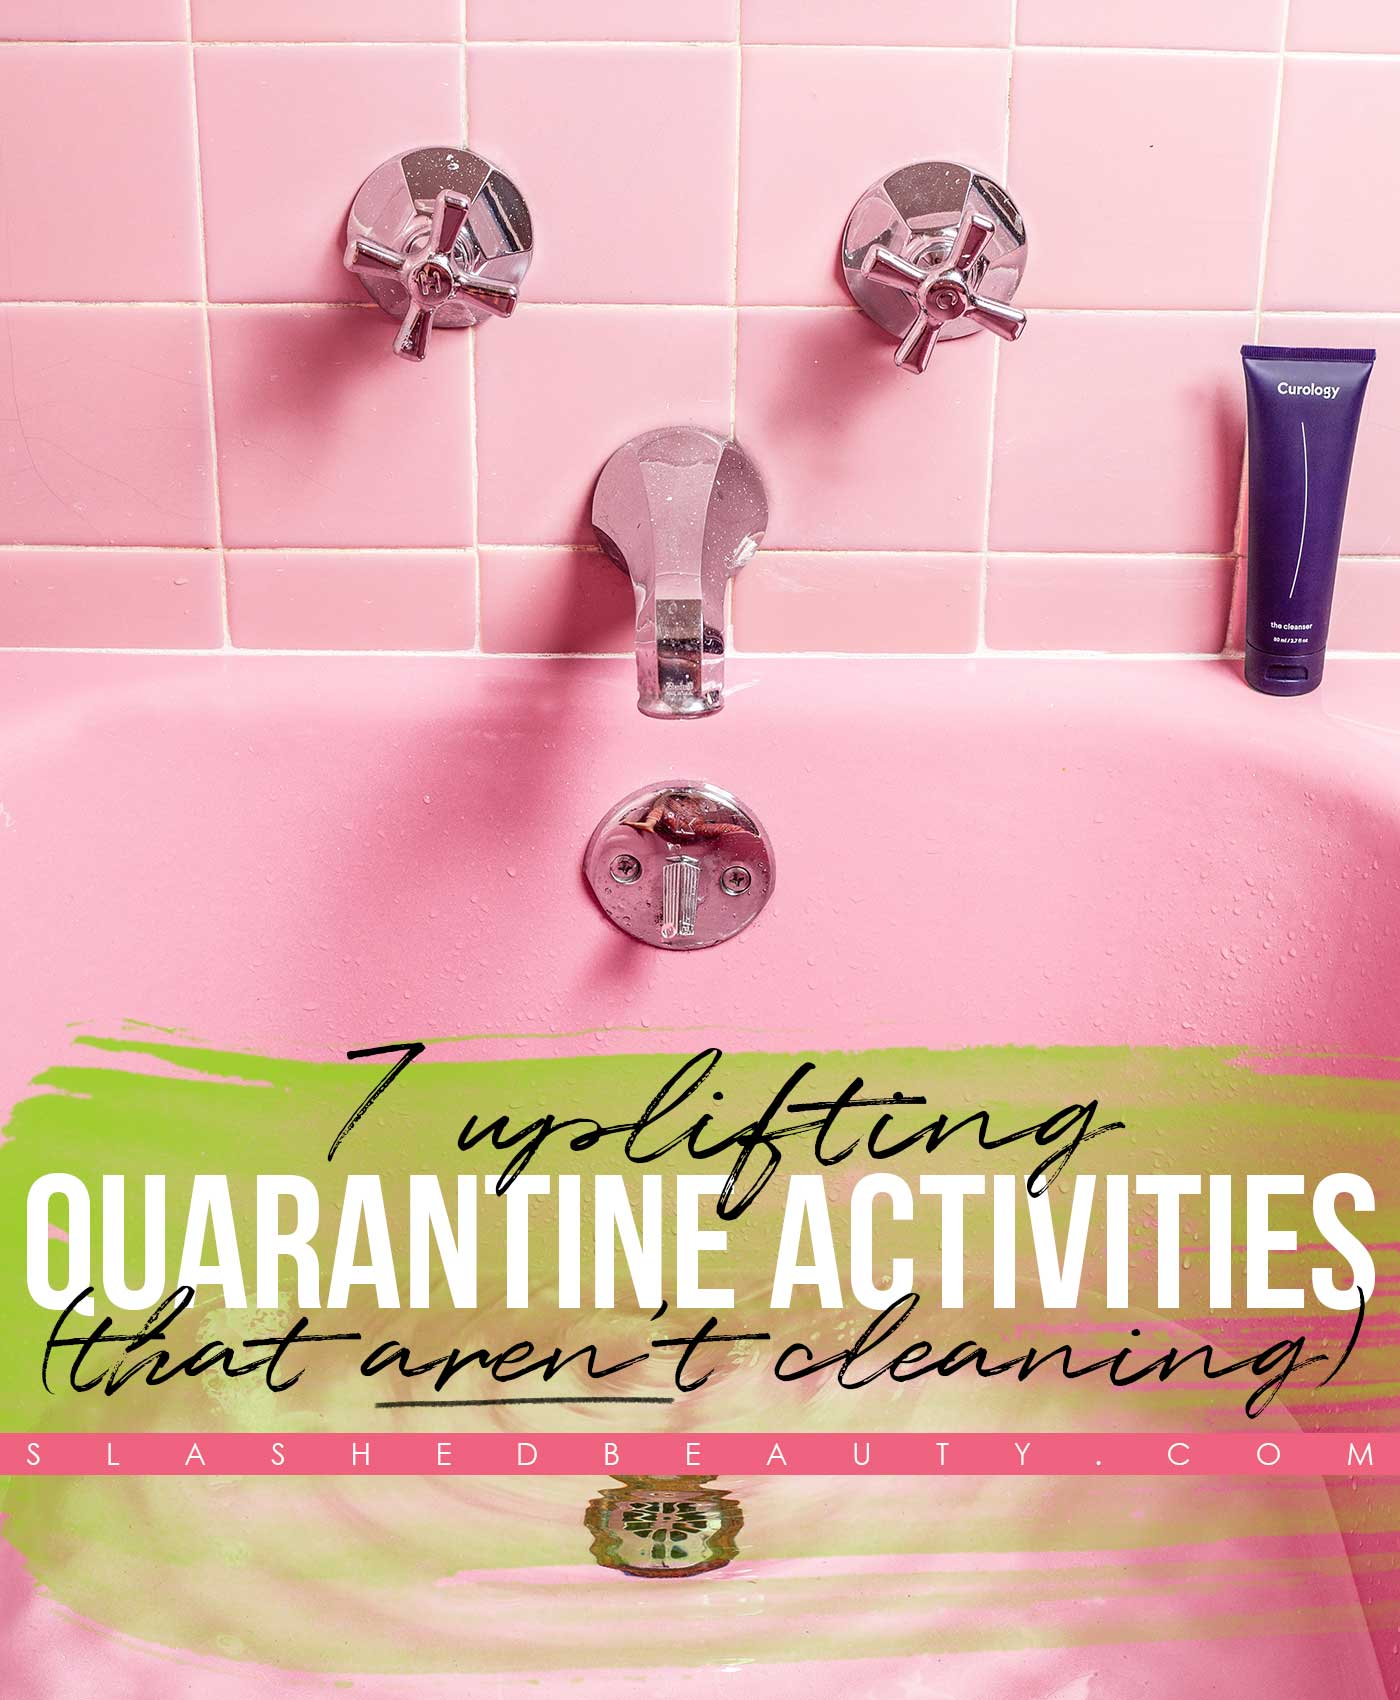 7 Uplifting Quarantine Activities That Aren't Cleaning | Quarantine Activities for Adults | Slashed Beauty